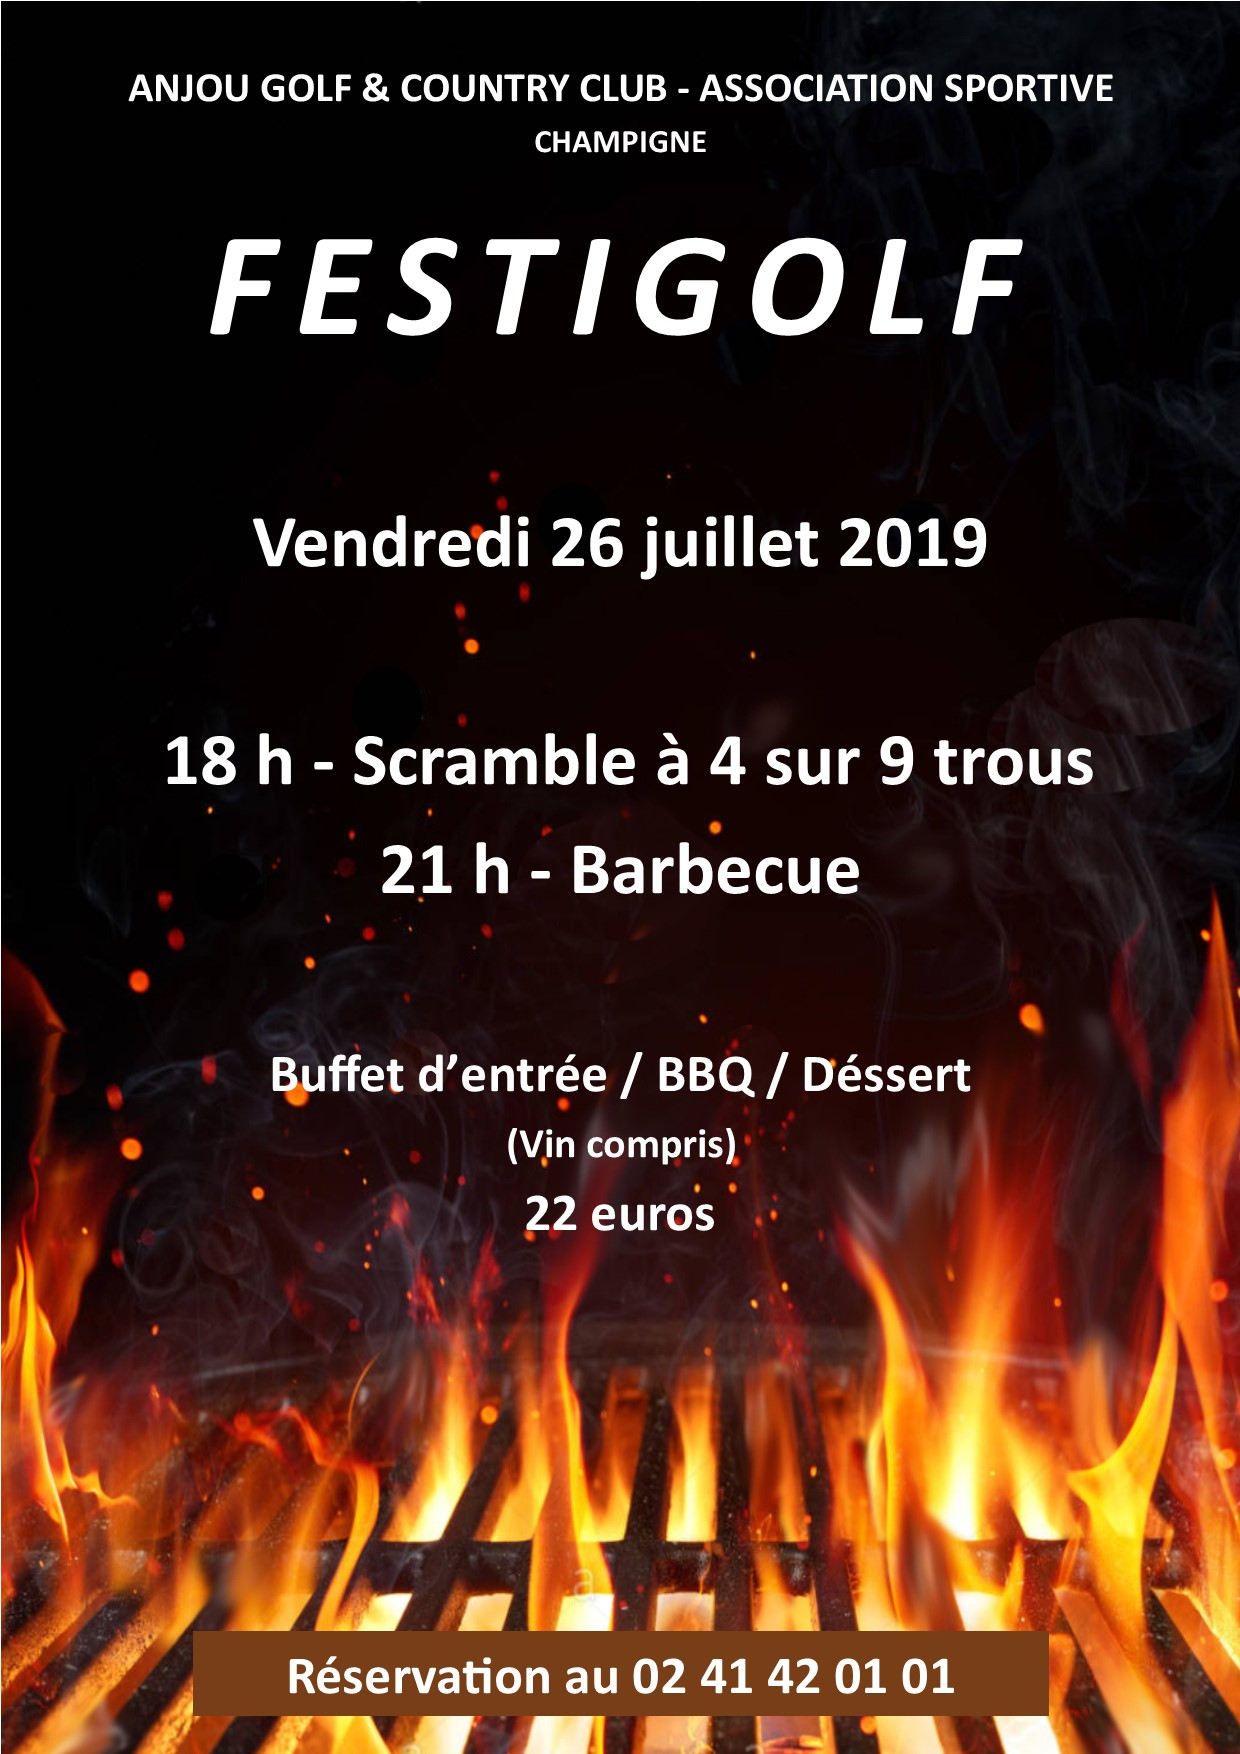 Festigolf 26 juiller 2019 Anjou Golf Association Sportive .jpg